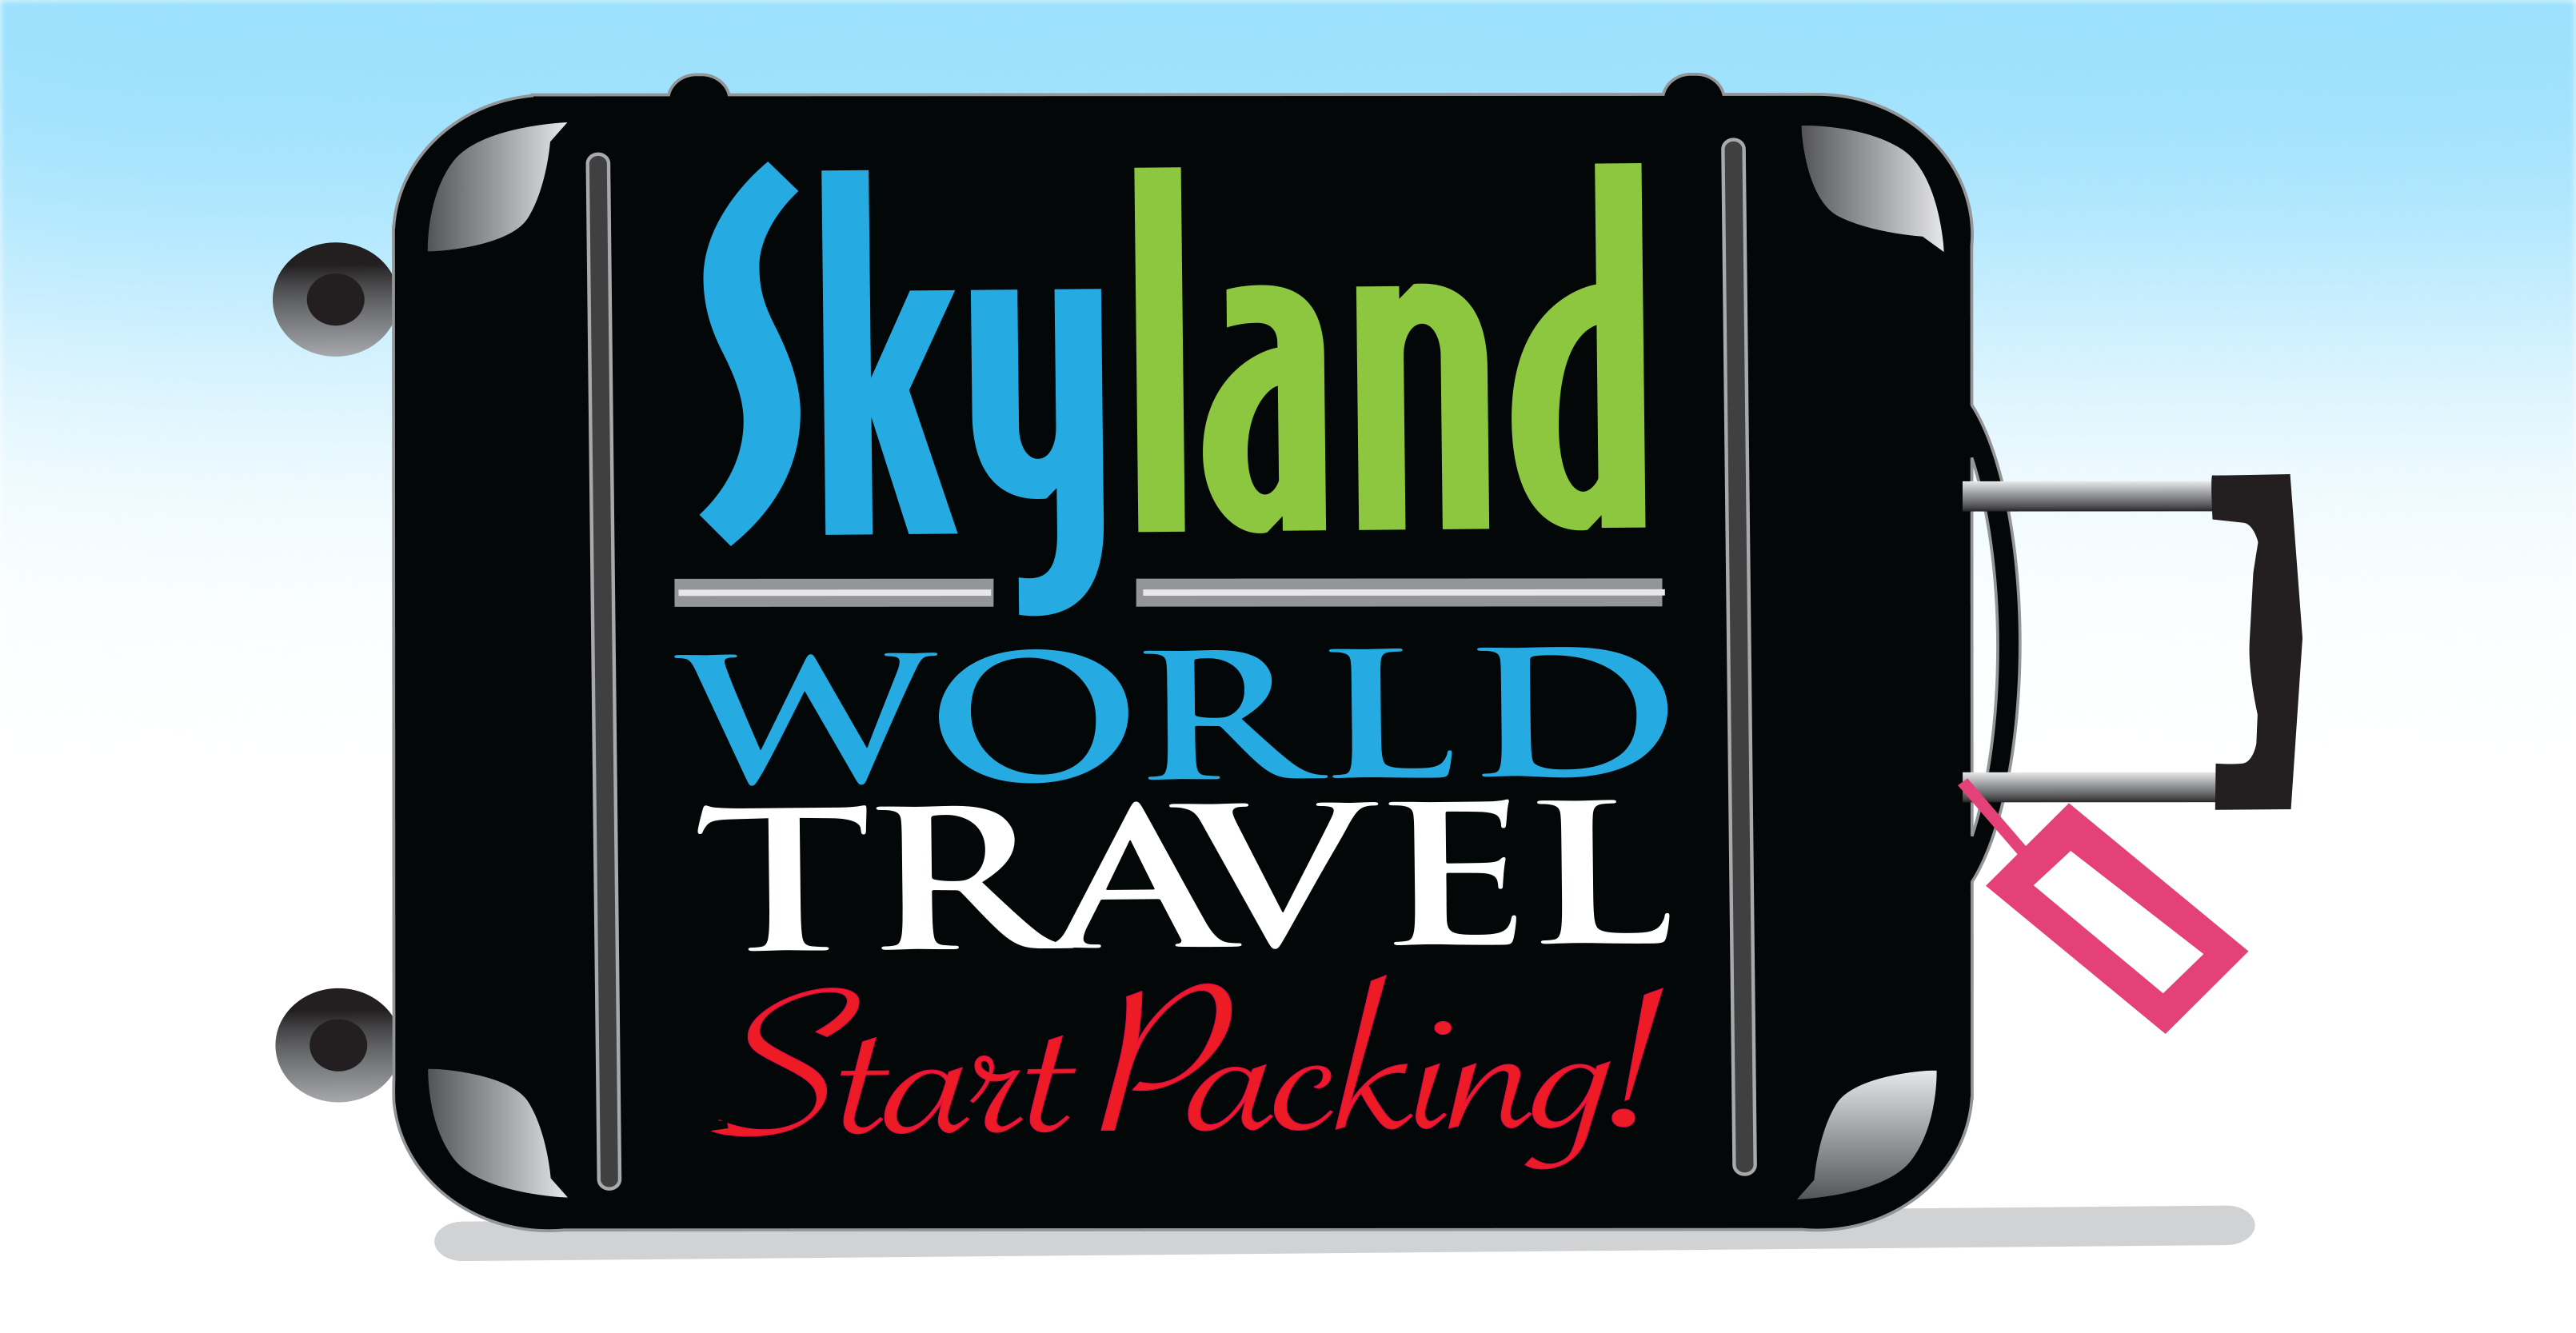 Skyland World Travel | Crystal Cruises - Hackettstown, NJ